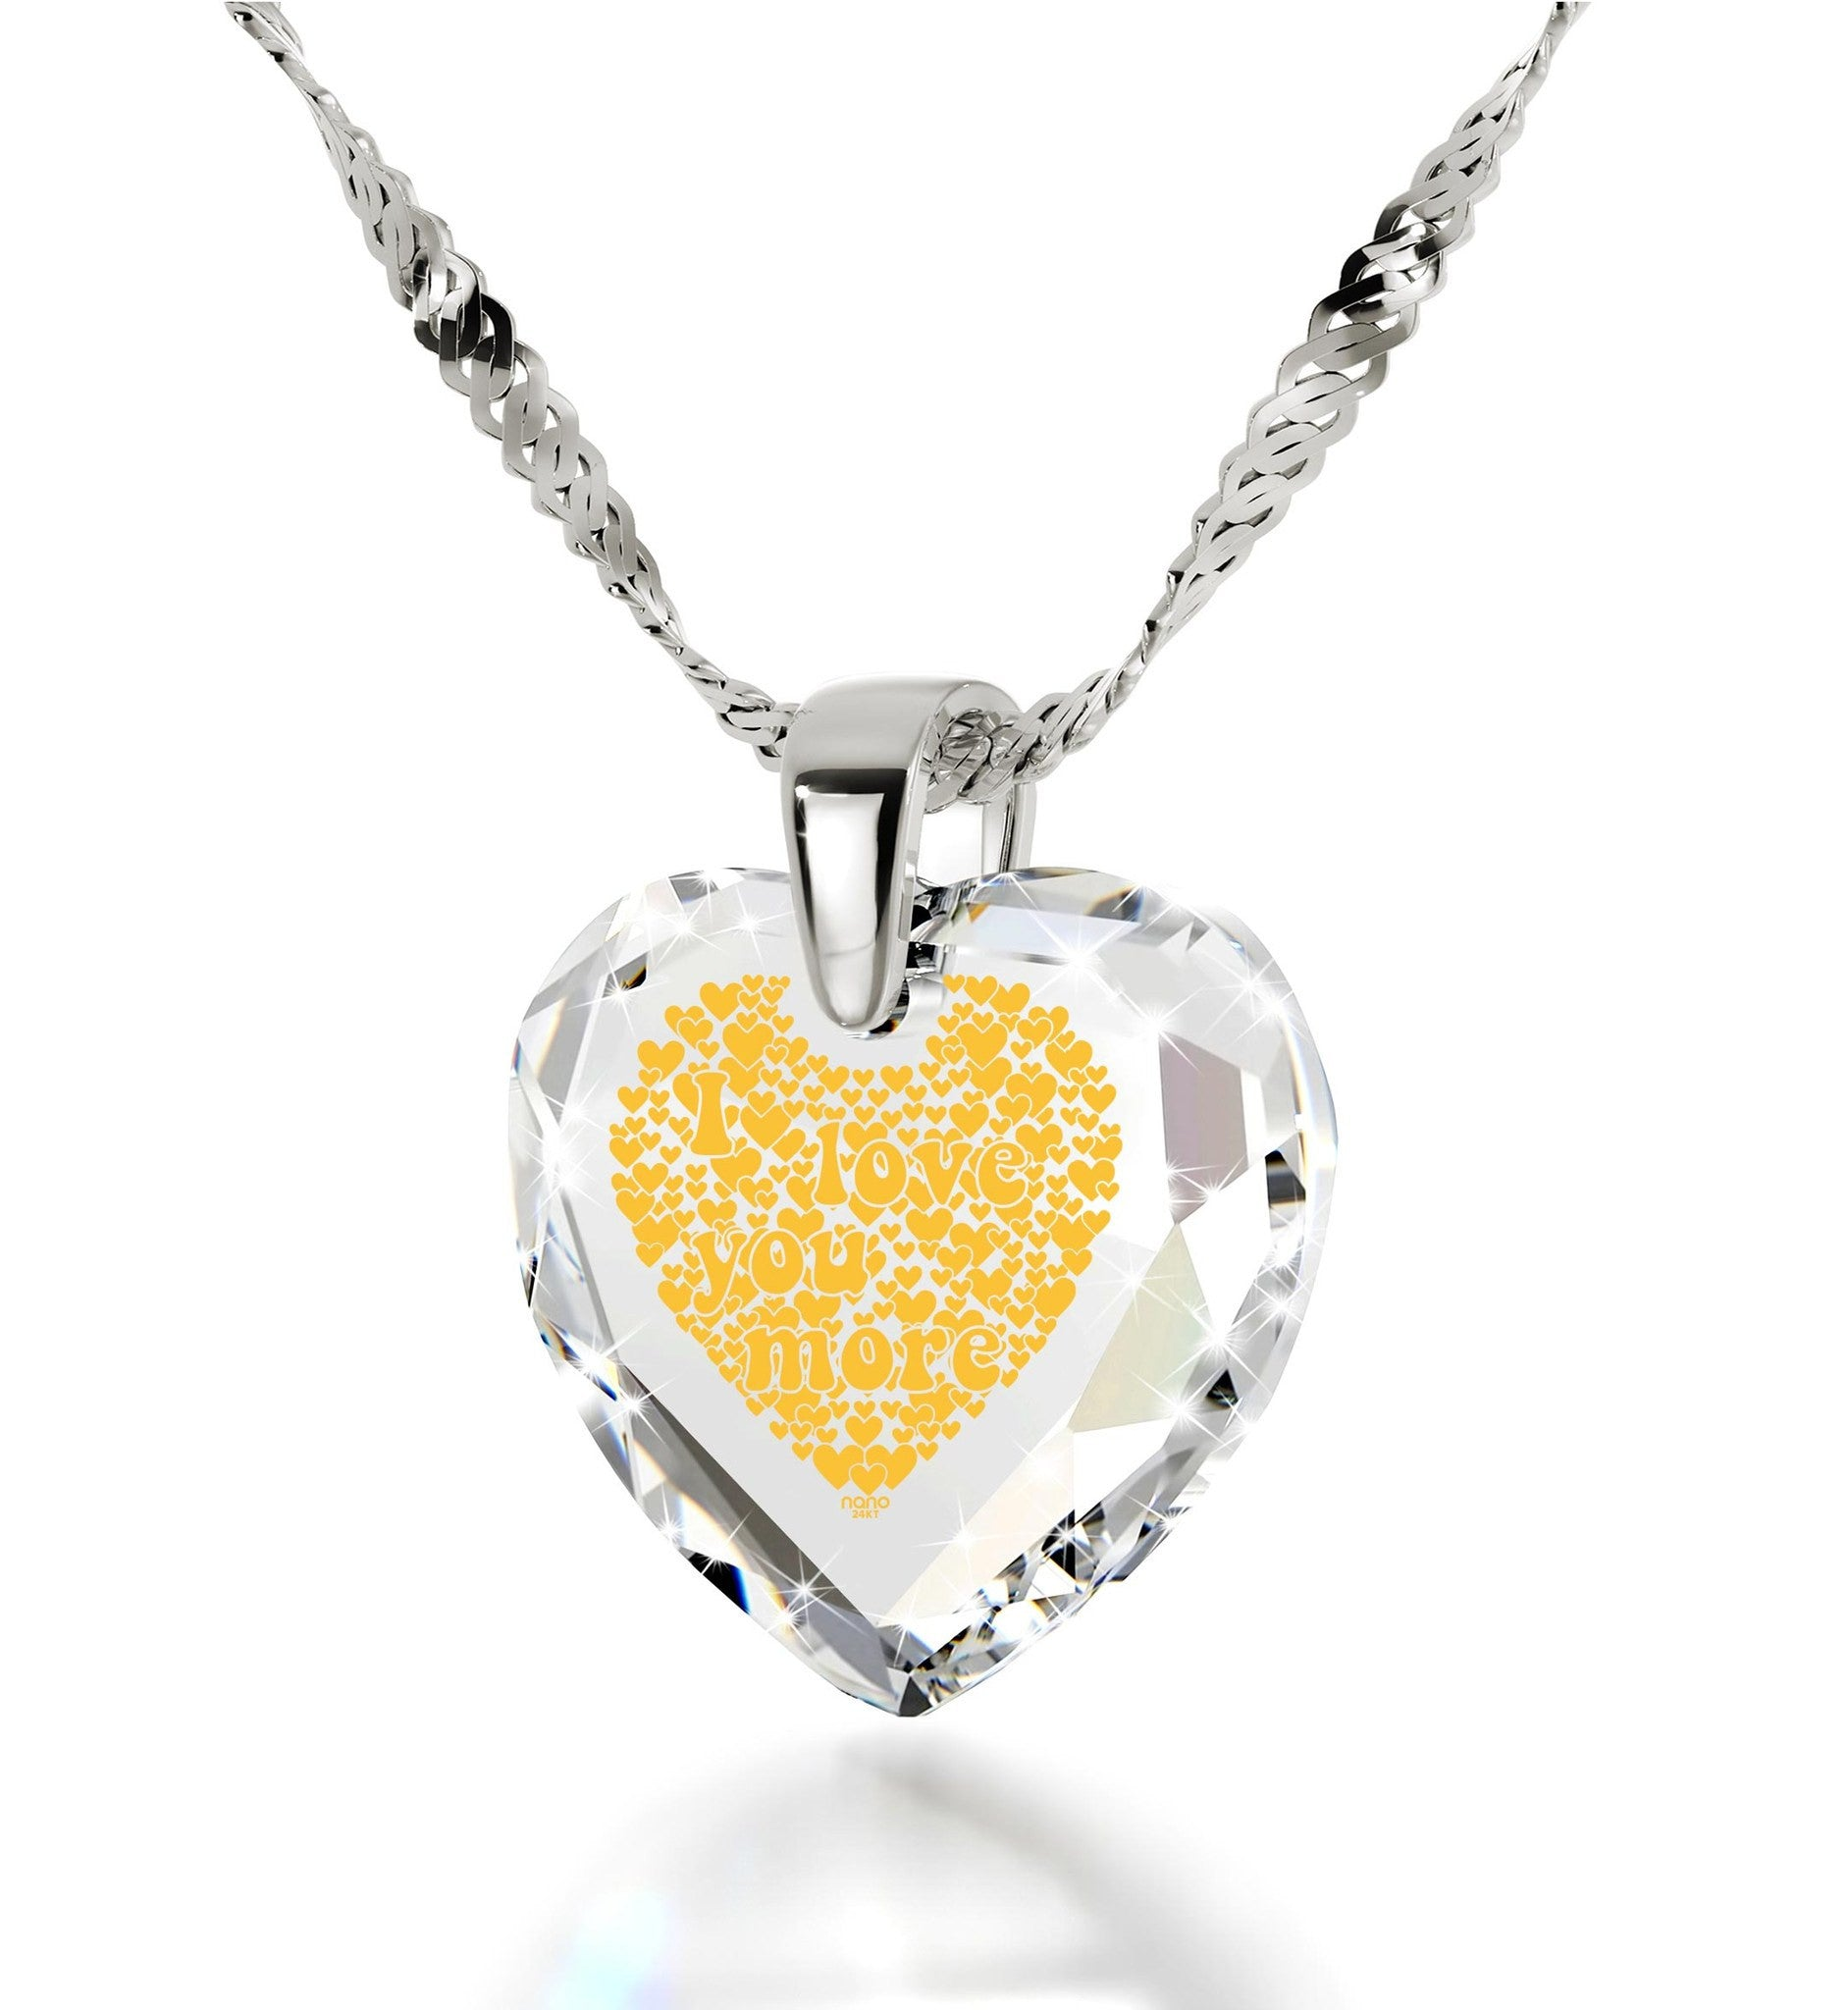 """Gift for Wife Birthday,14k White Gold, 24k Imprint, Different Ways to Say I Love You, Nano Jewelry"""